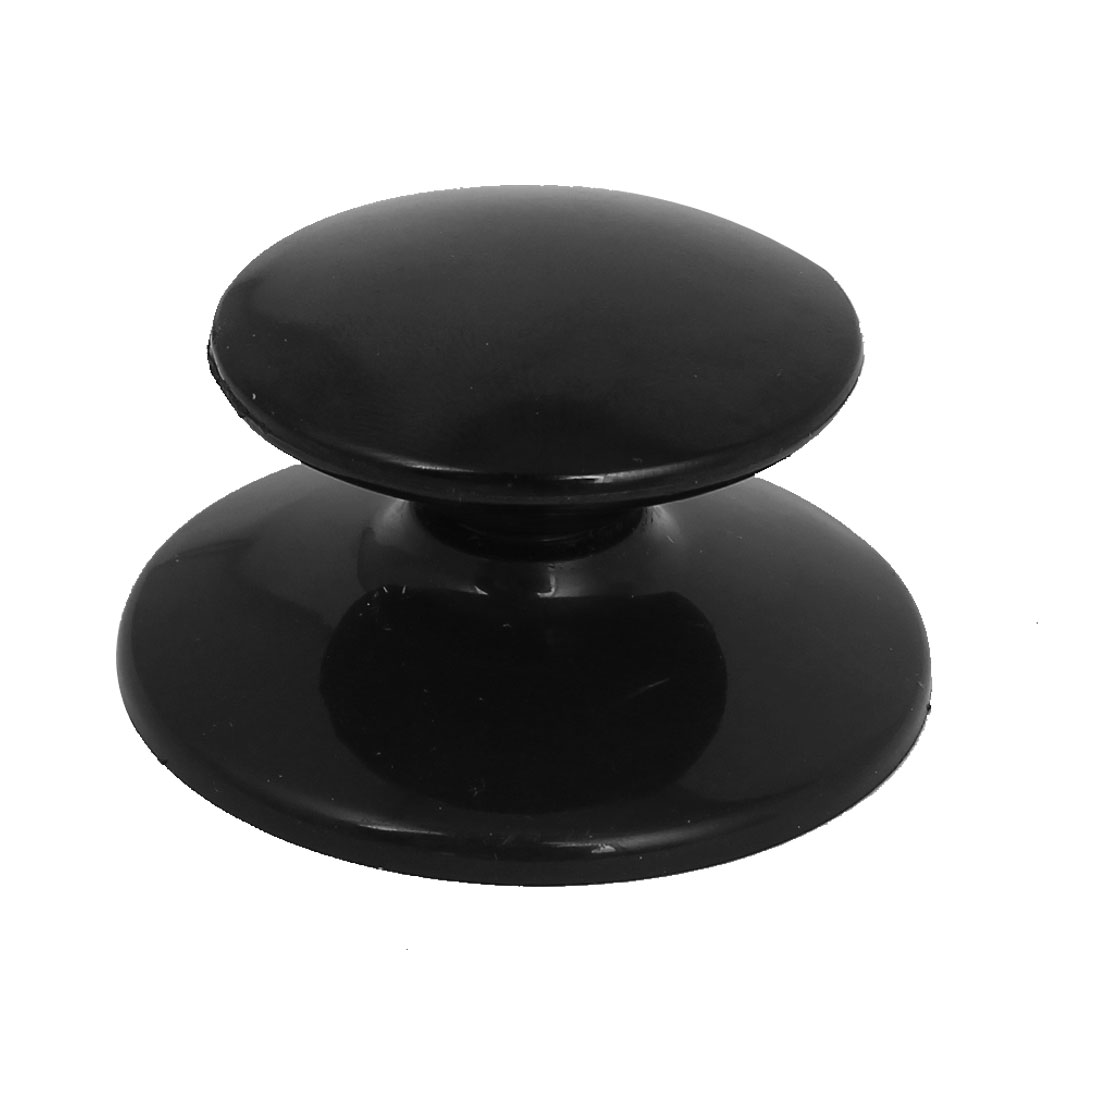 Kitchen Pot Pan Black Plastic Round Lid Handle Knobs Cookware Parts Cover Hand Grip